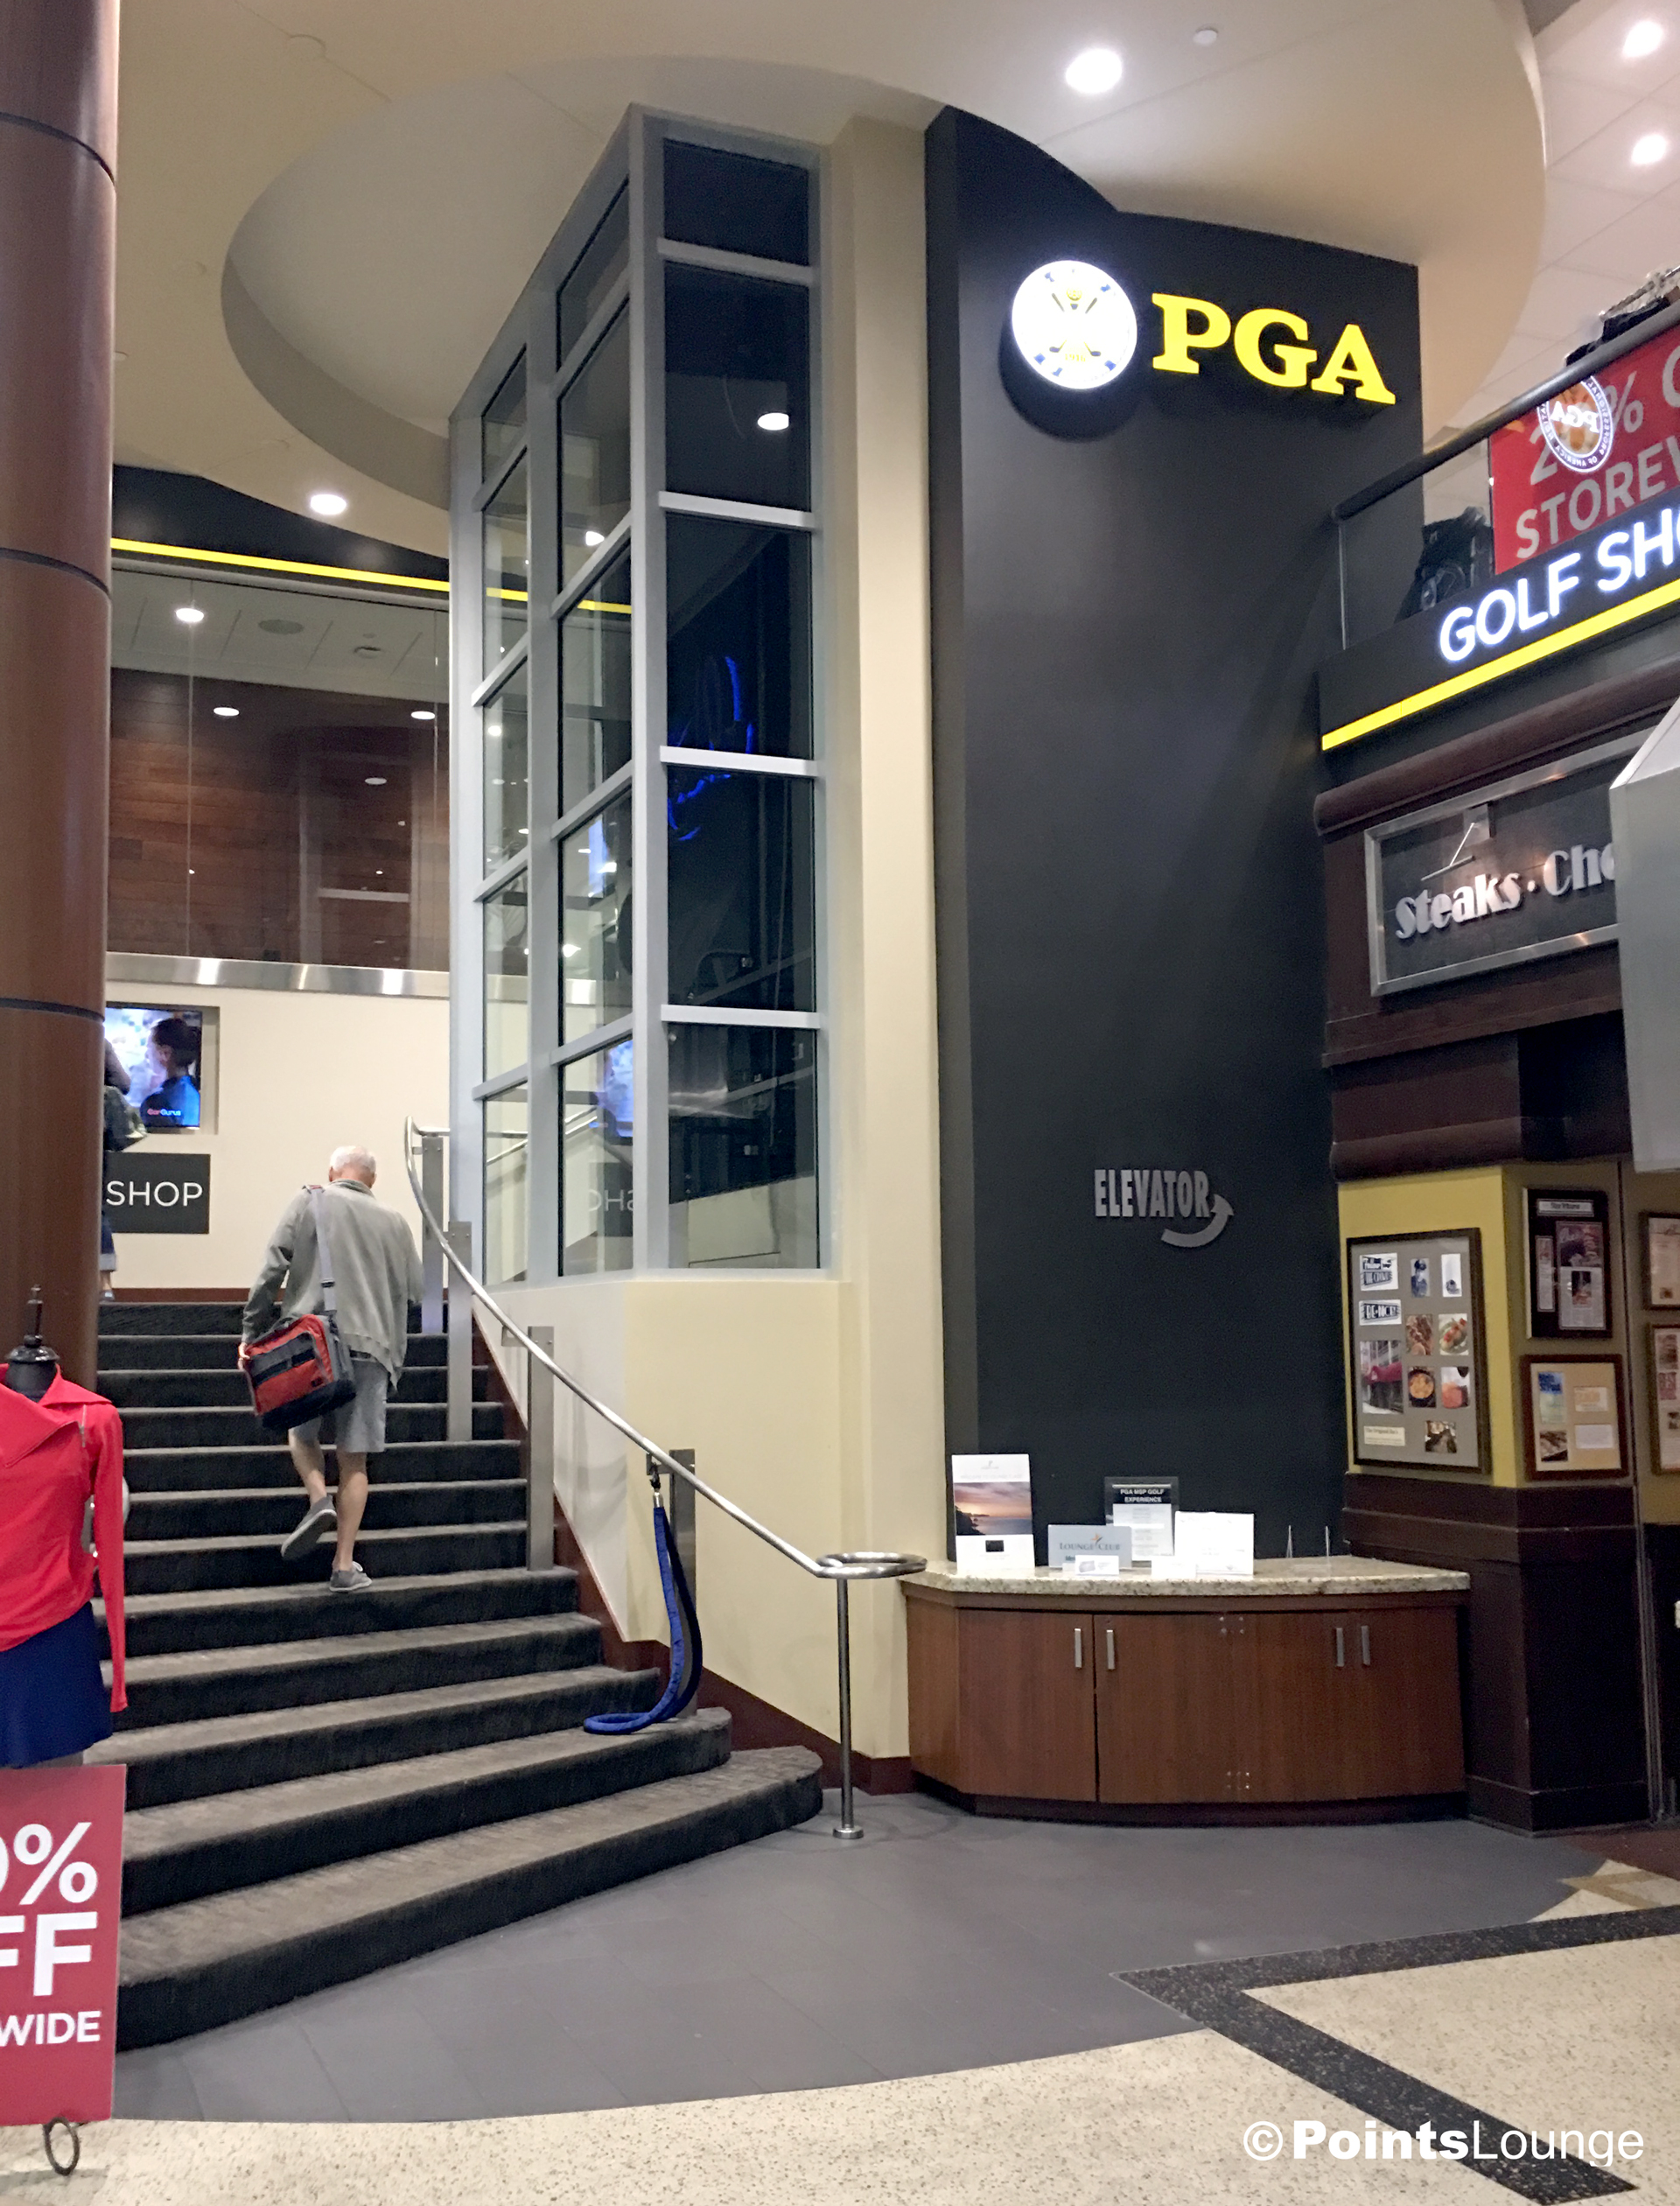 A view of the entrance options to the PGA MSP golf-themed airport lounge, as seen from the main course atrium at Minneapolis-St. Paul International Airport. One of the ways the lounge can be accessed is with Priority Pass membership. (Click for a larger image.)